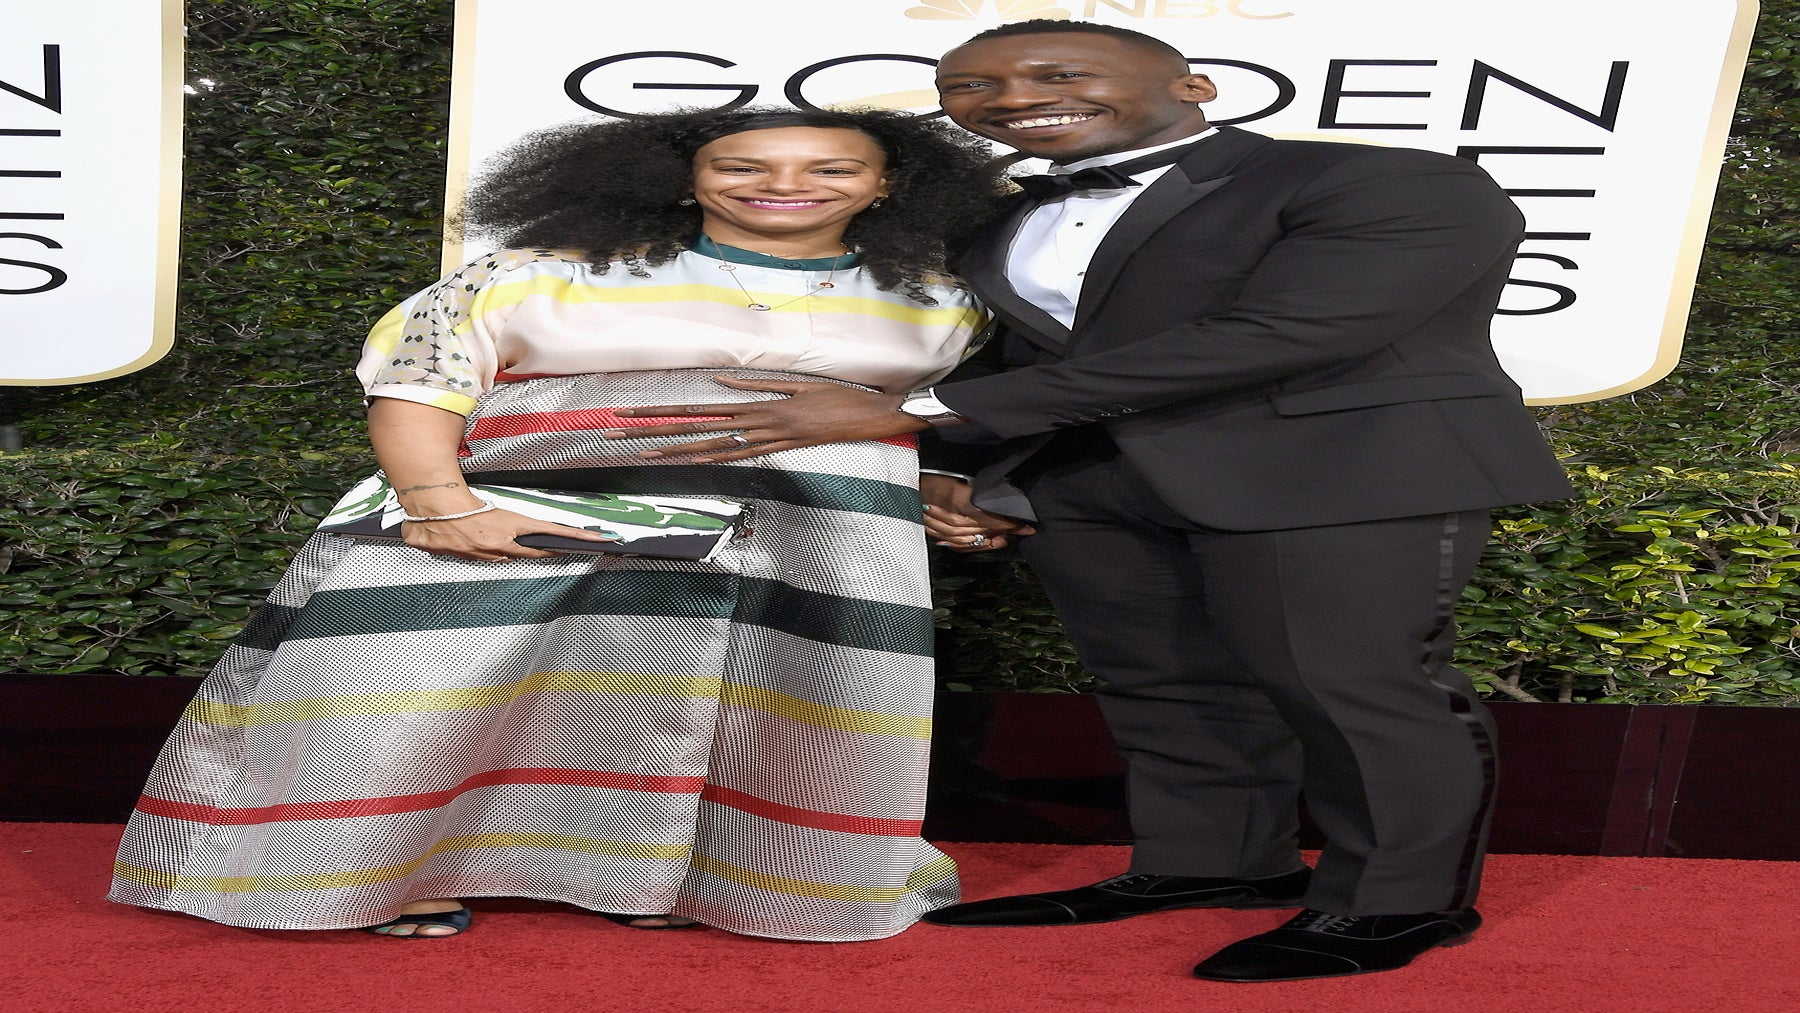 Mahershala Ali Praises Pregnant Wife for Being a 'Soldier' During Grueling Awards Season